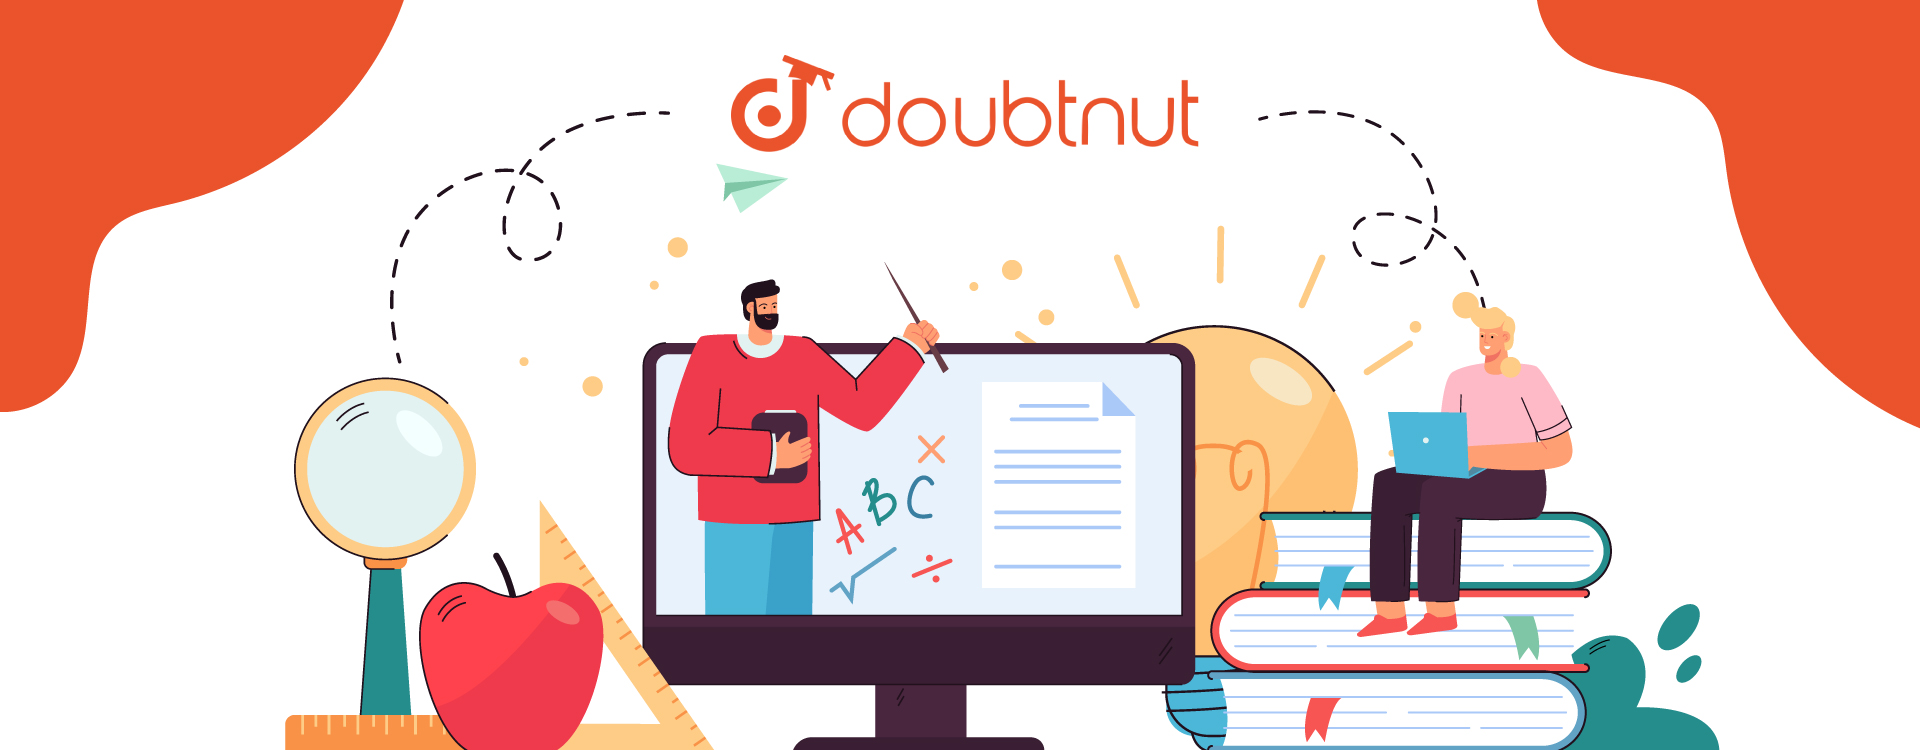 Doubtnut the unique real time edtech startup